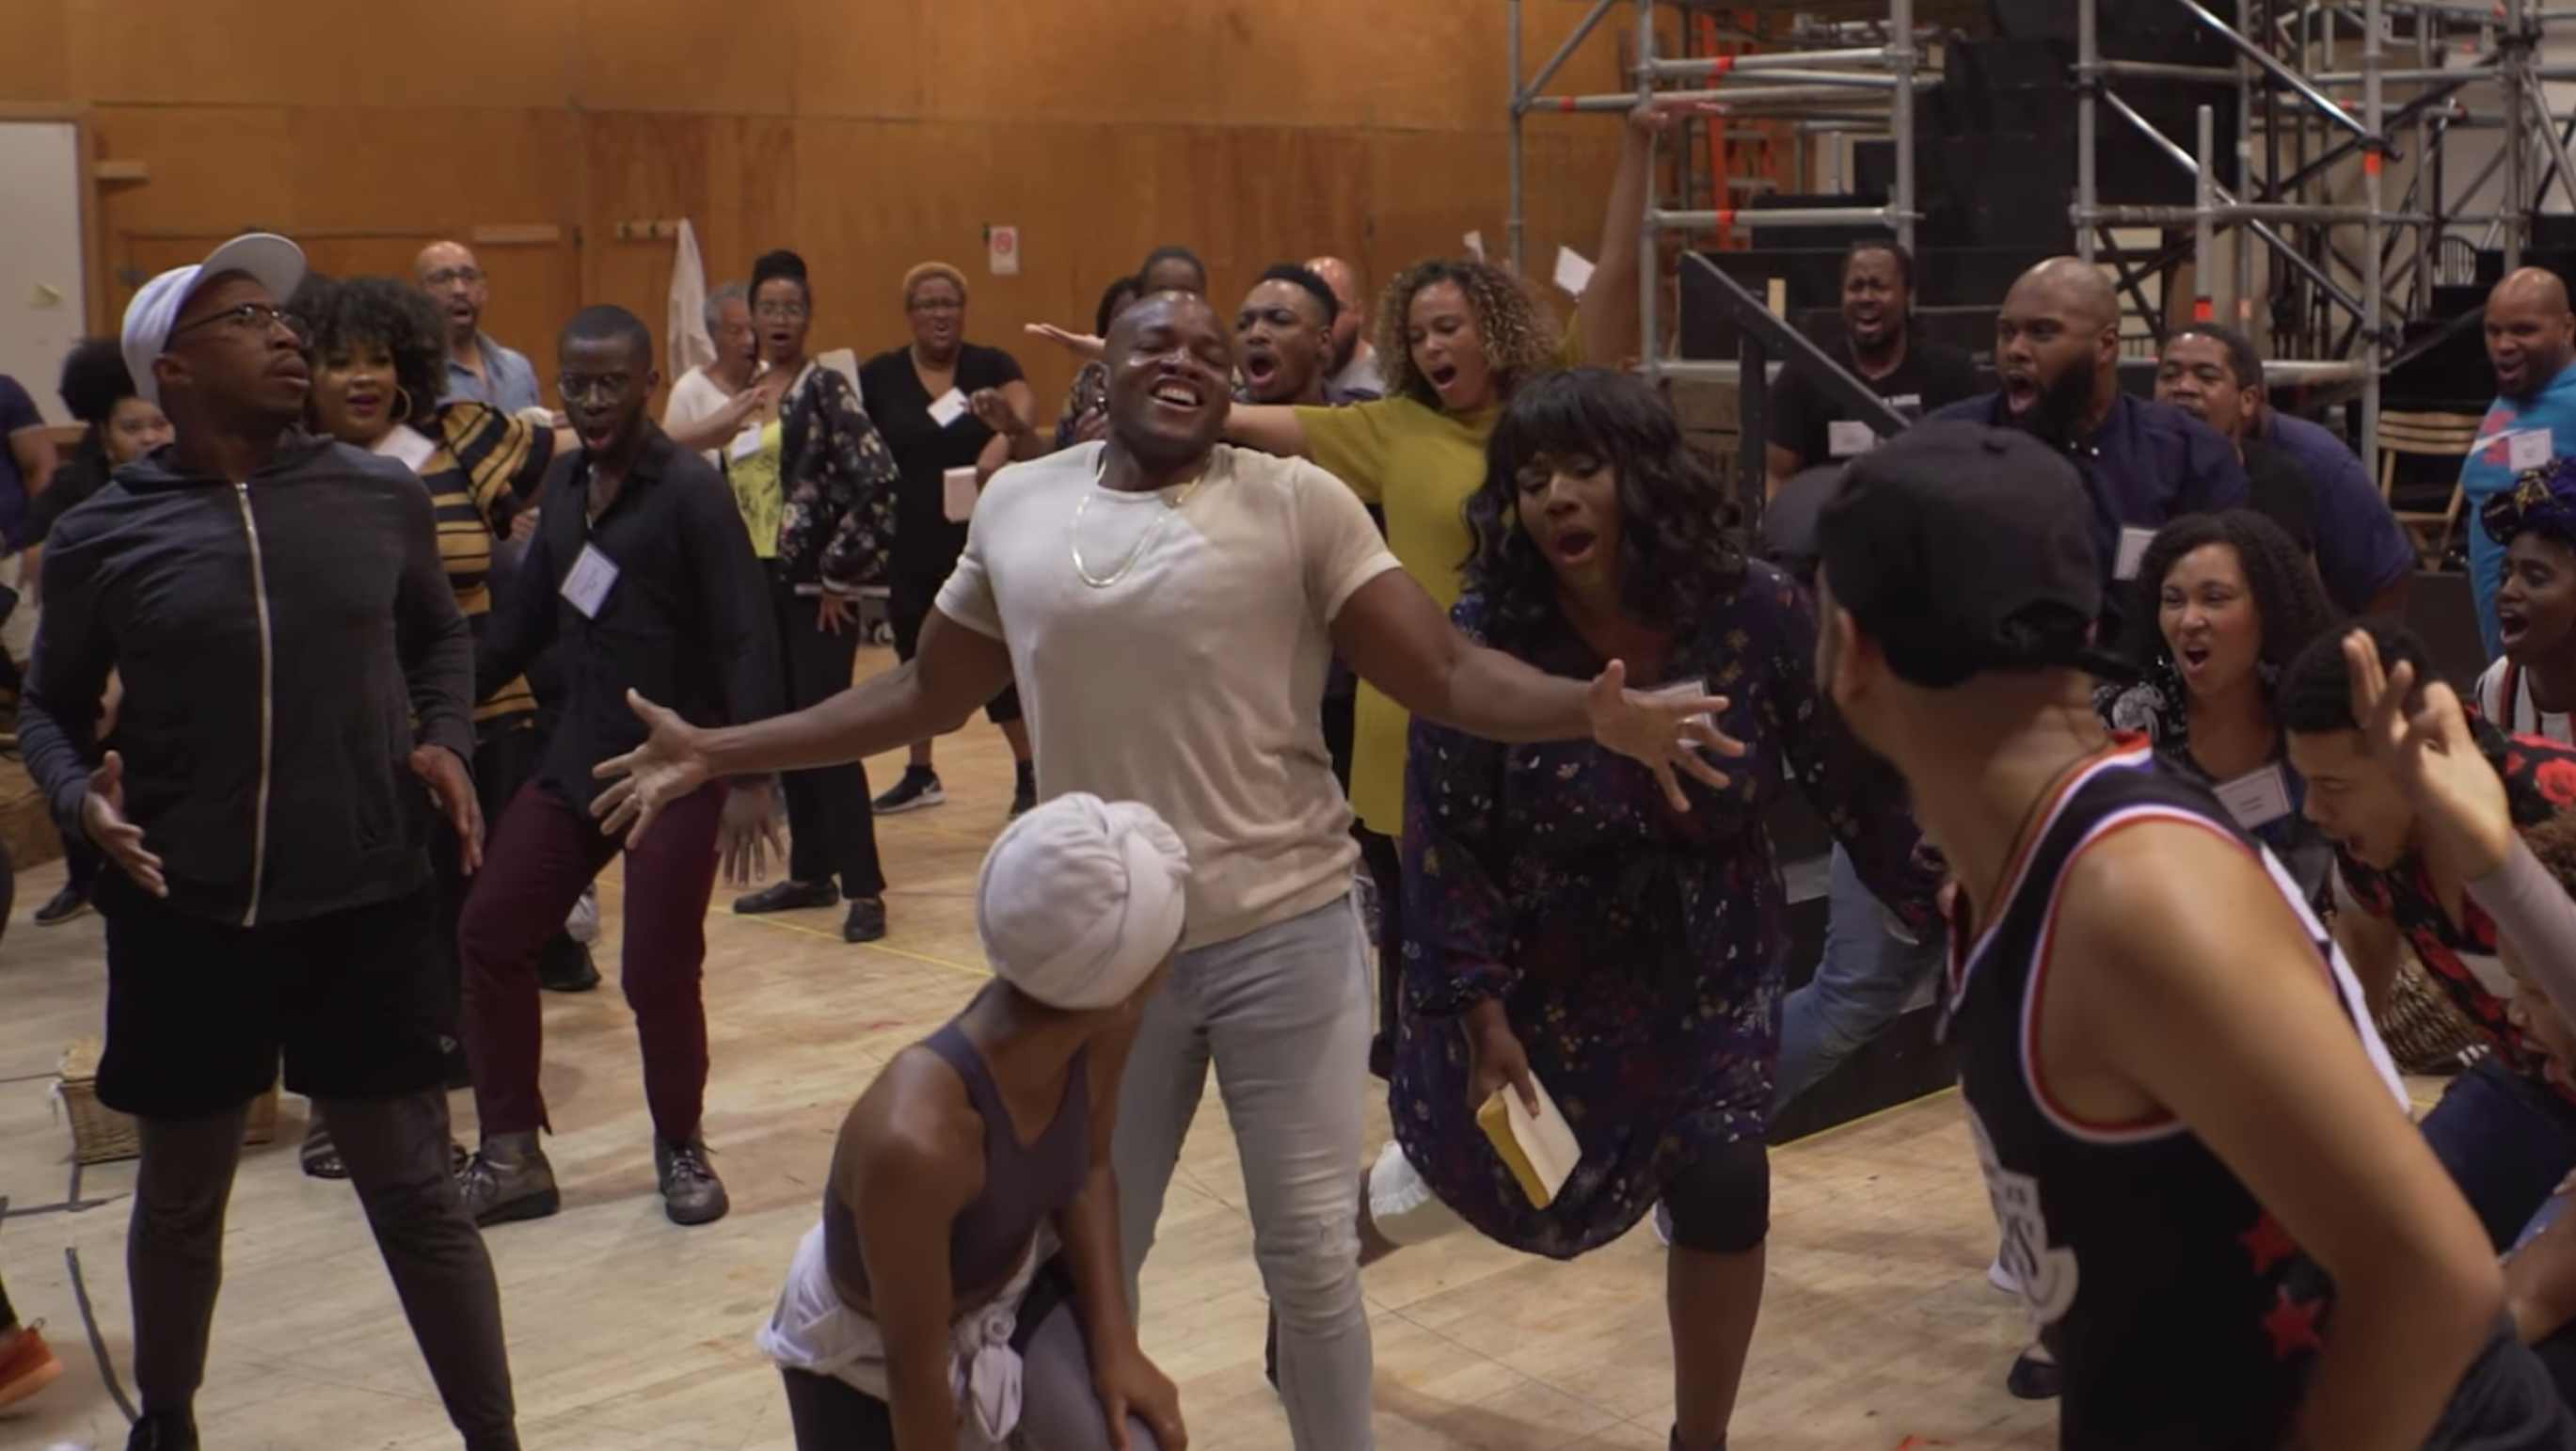 Watch the Cast of the Metropolitan Opera's Porgy and Bess in Rehearsals